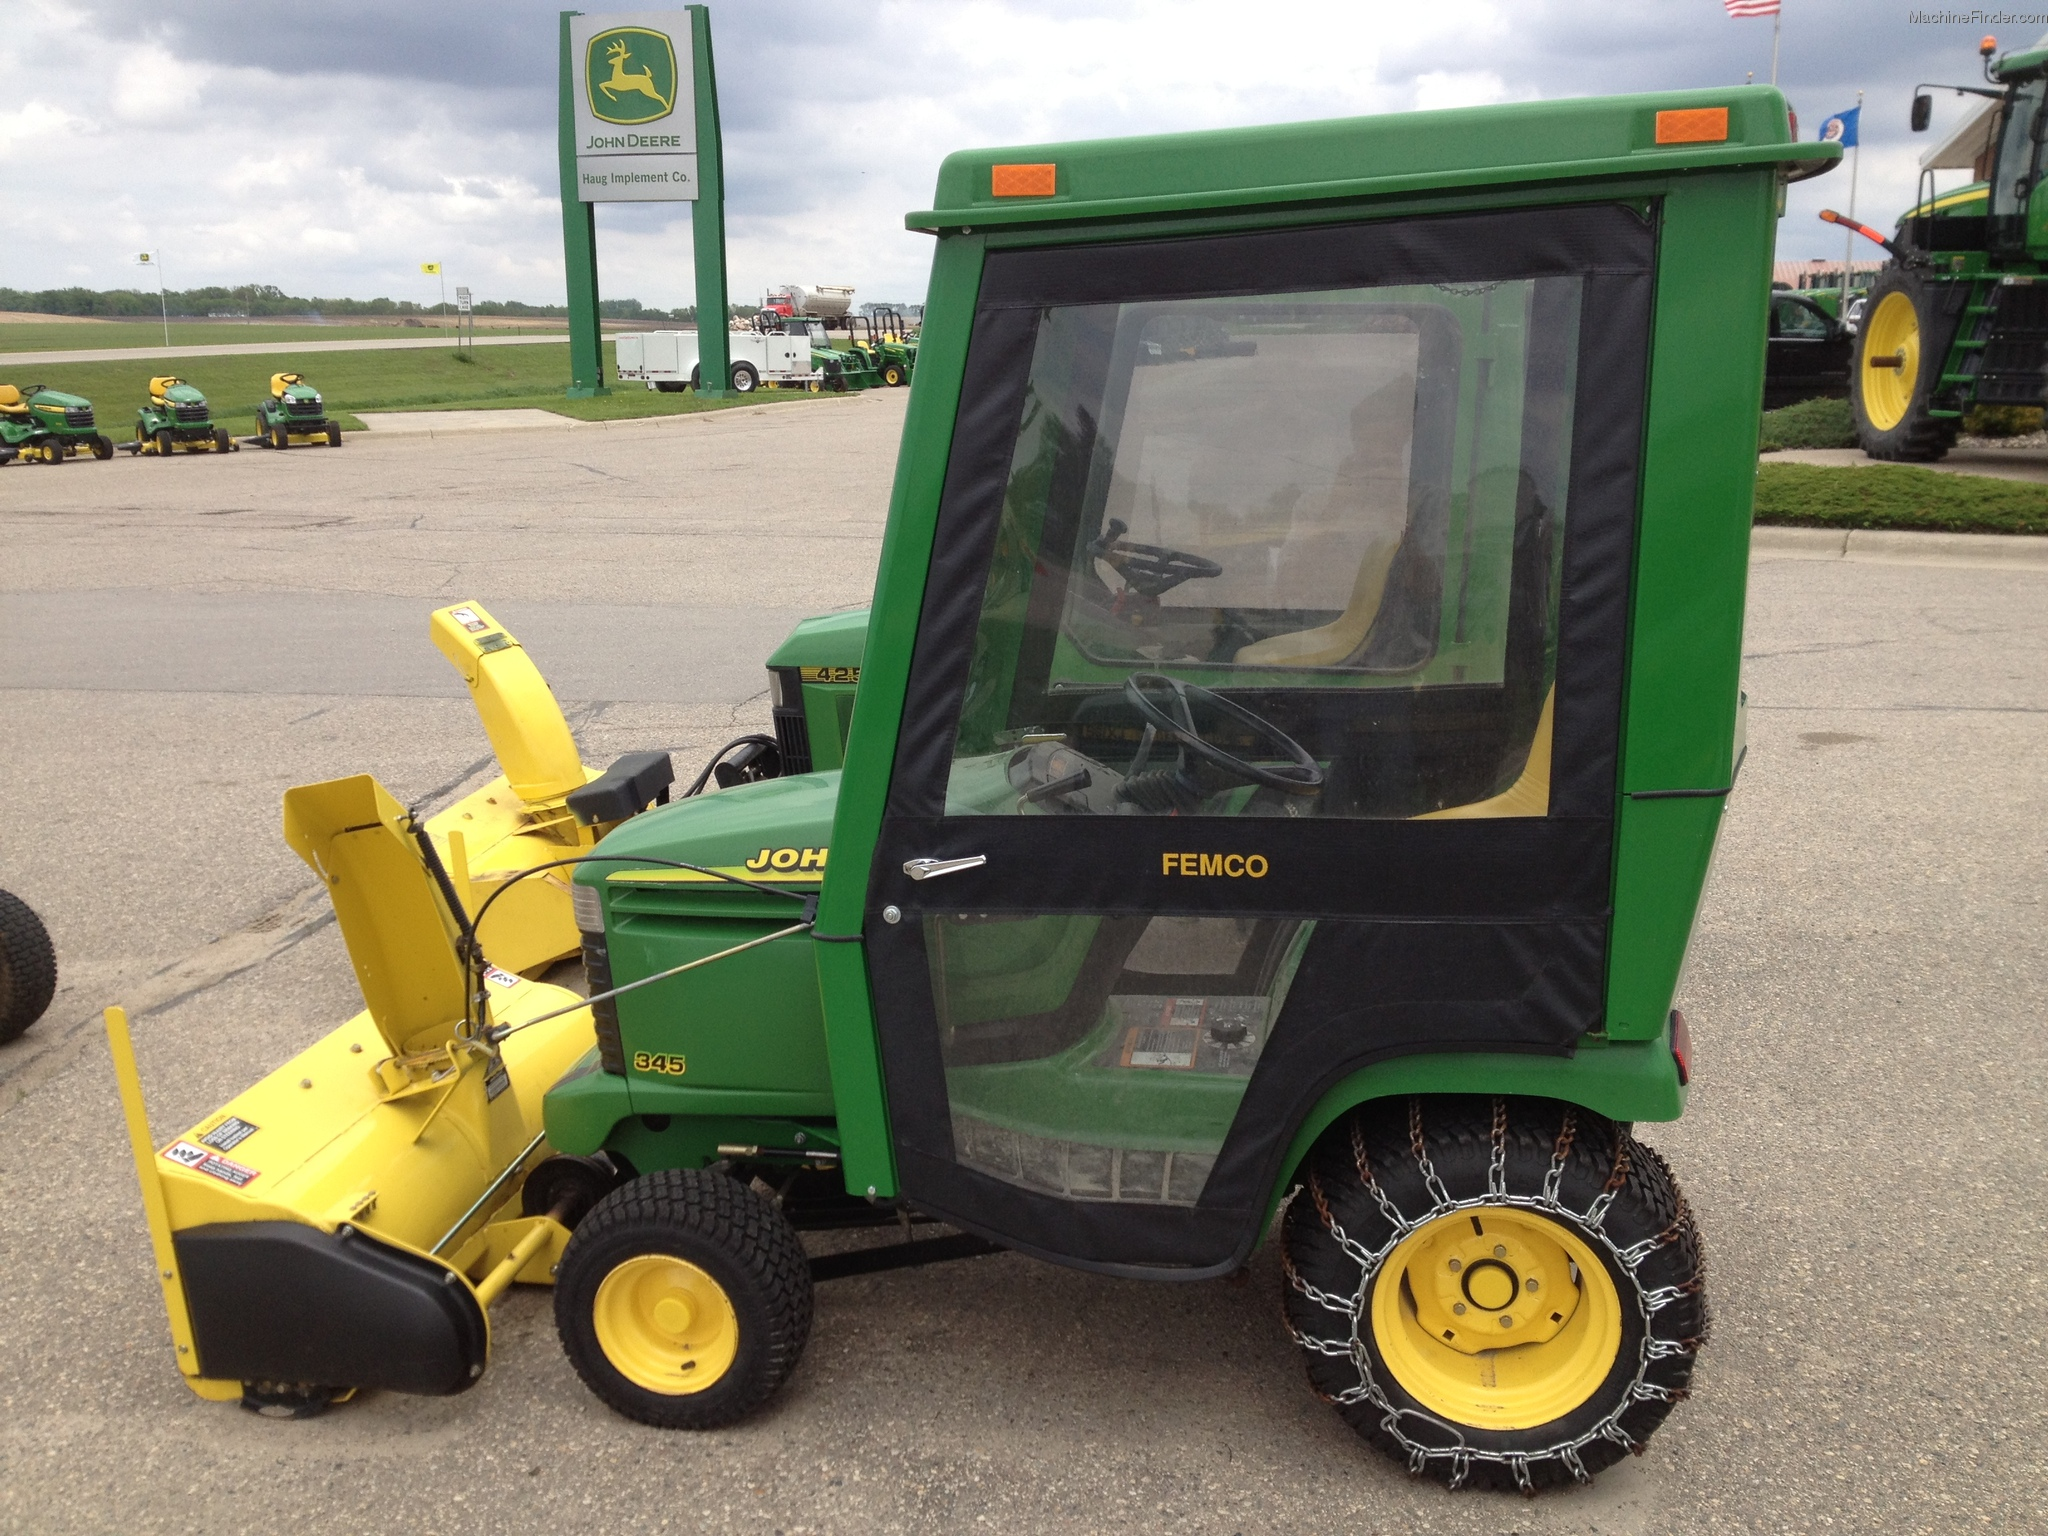 1997 John Deere 345 Lawn & Garden and Commercial Mowing - John Deere MachineFinder